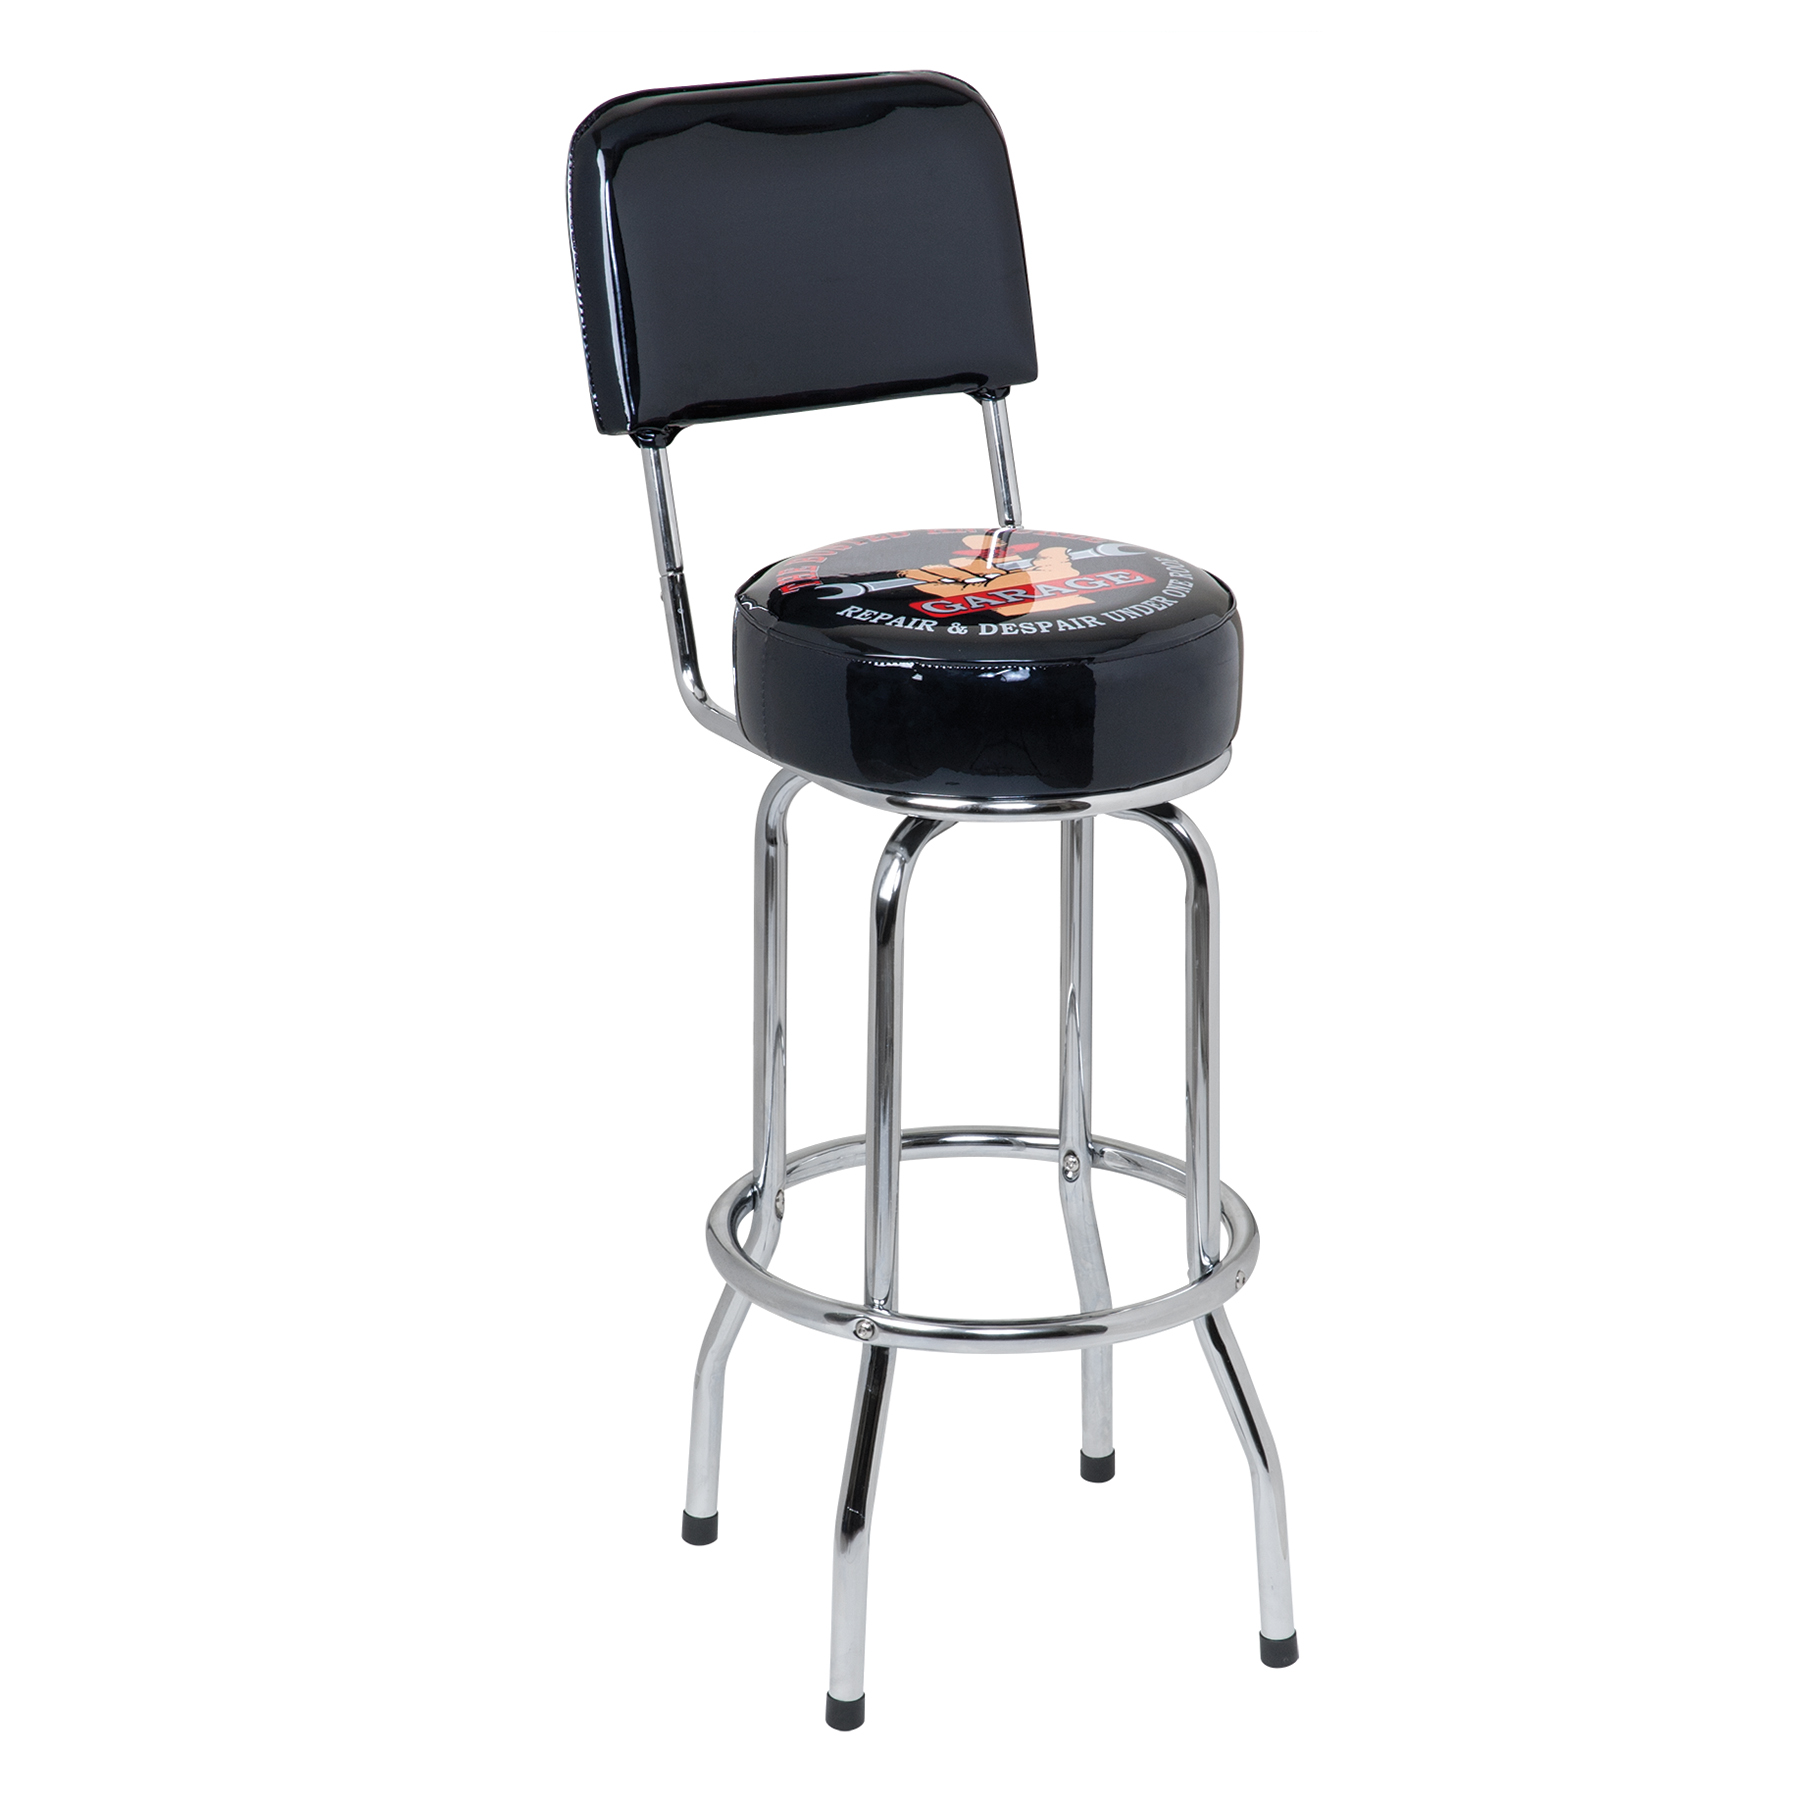 Miraculous Details About The Busted Knuckle Garage 30 Swivel Bar Stool With Backrest Bkg 72200 Ncnpc Chair Design For Home Ncnpcorg